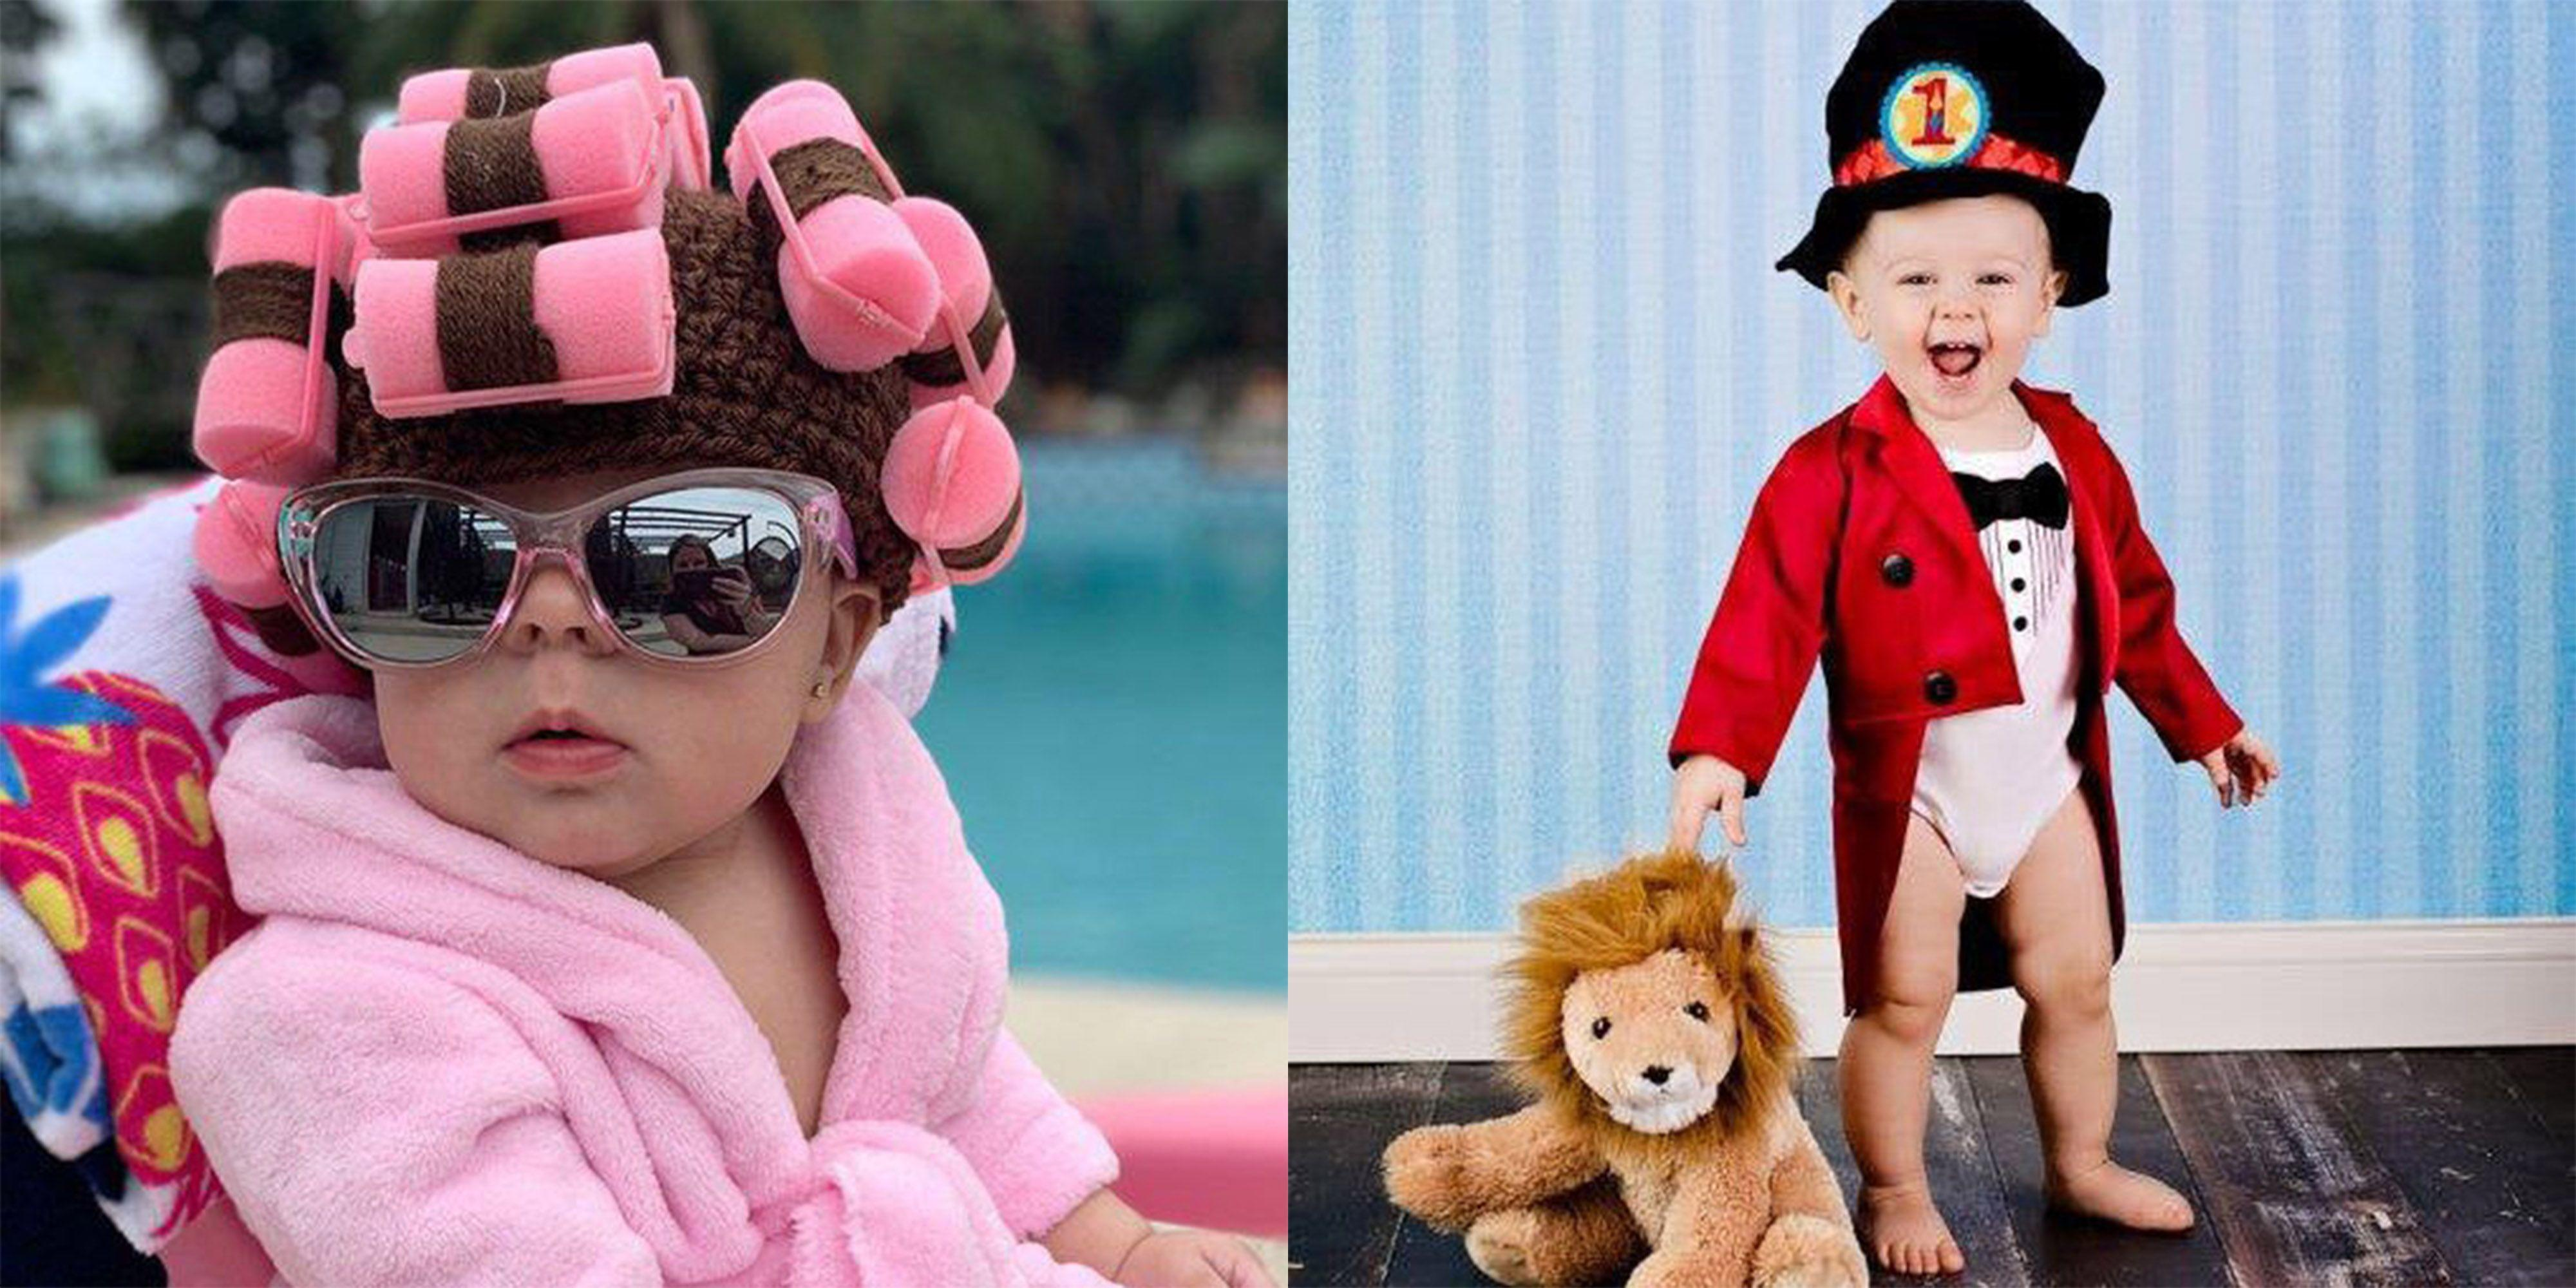 Halloween Costumes For Couples And Baby.35 Cute Baby Halloween Costumes Your Friends Haven T Thought Of Yet